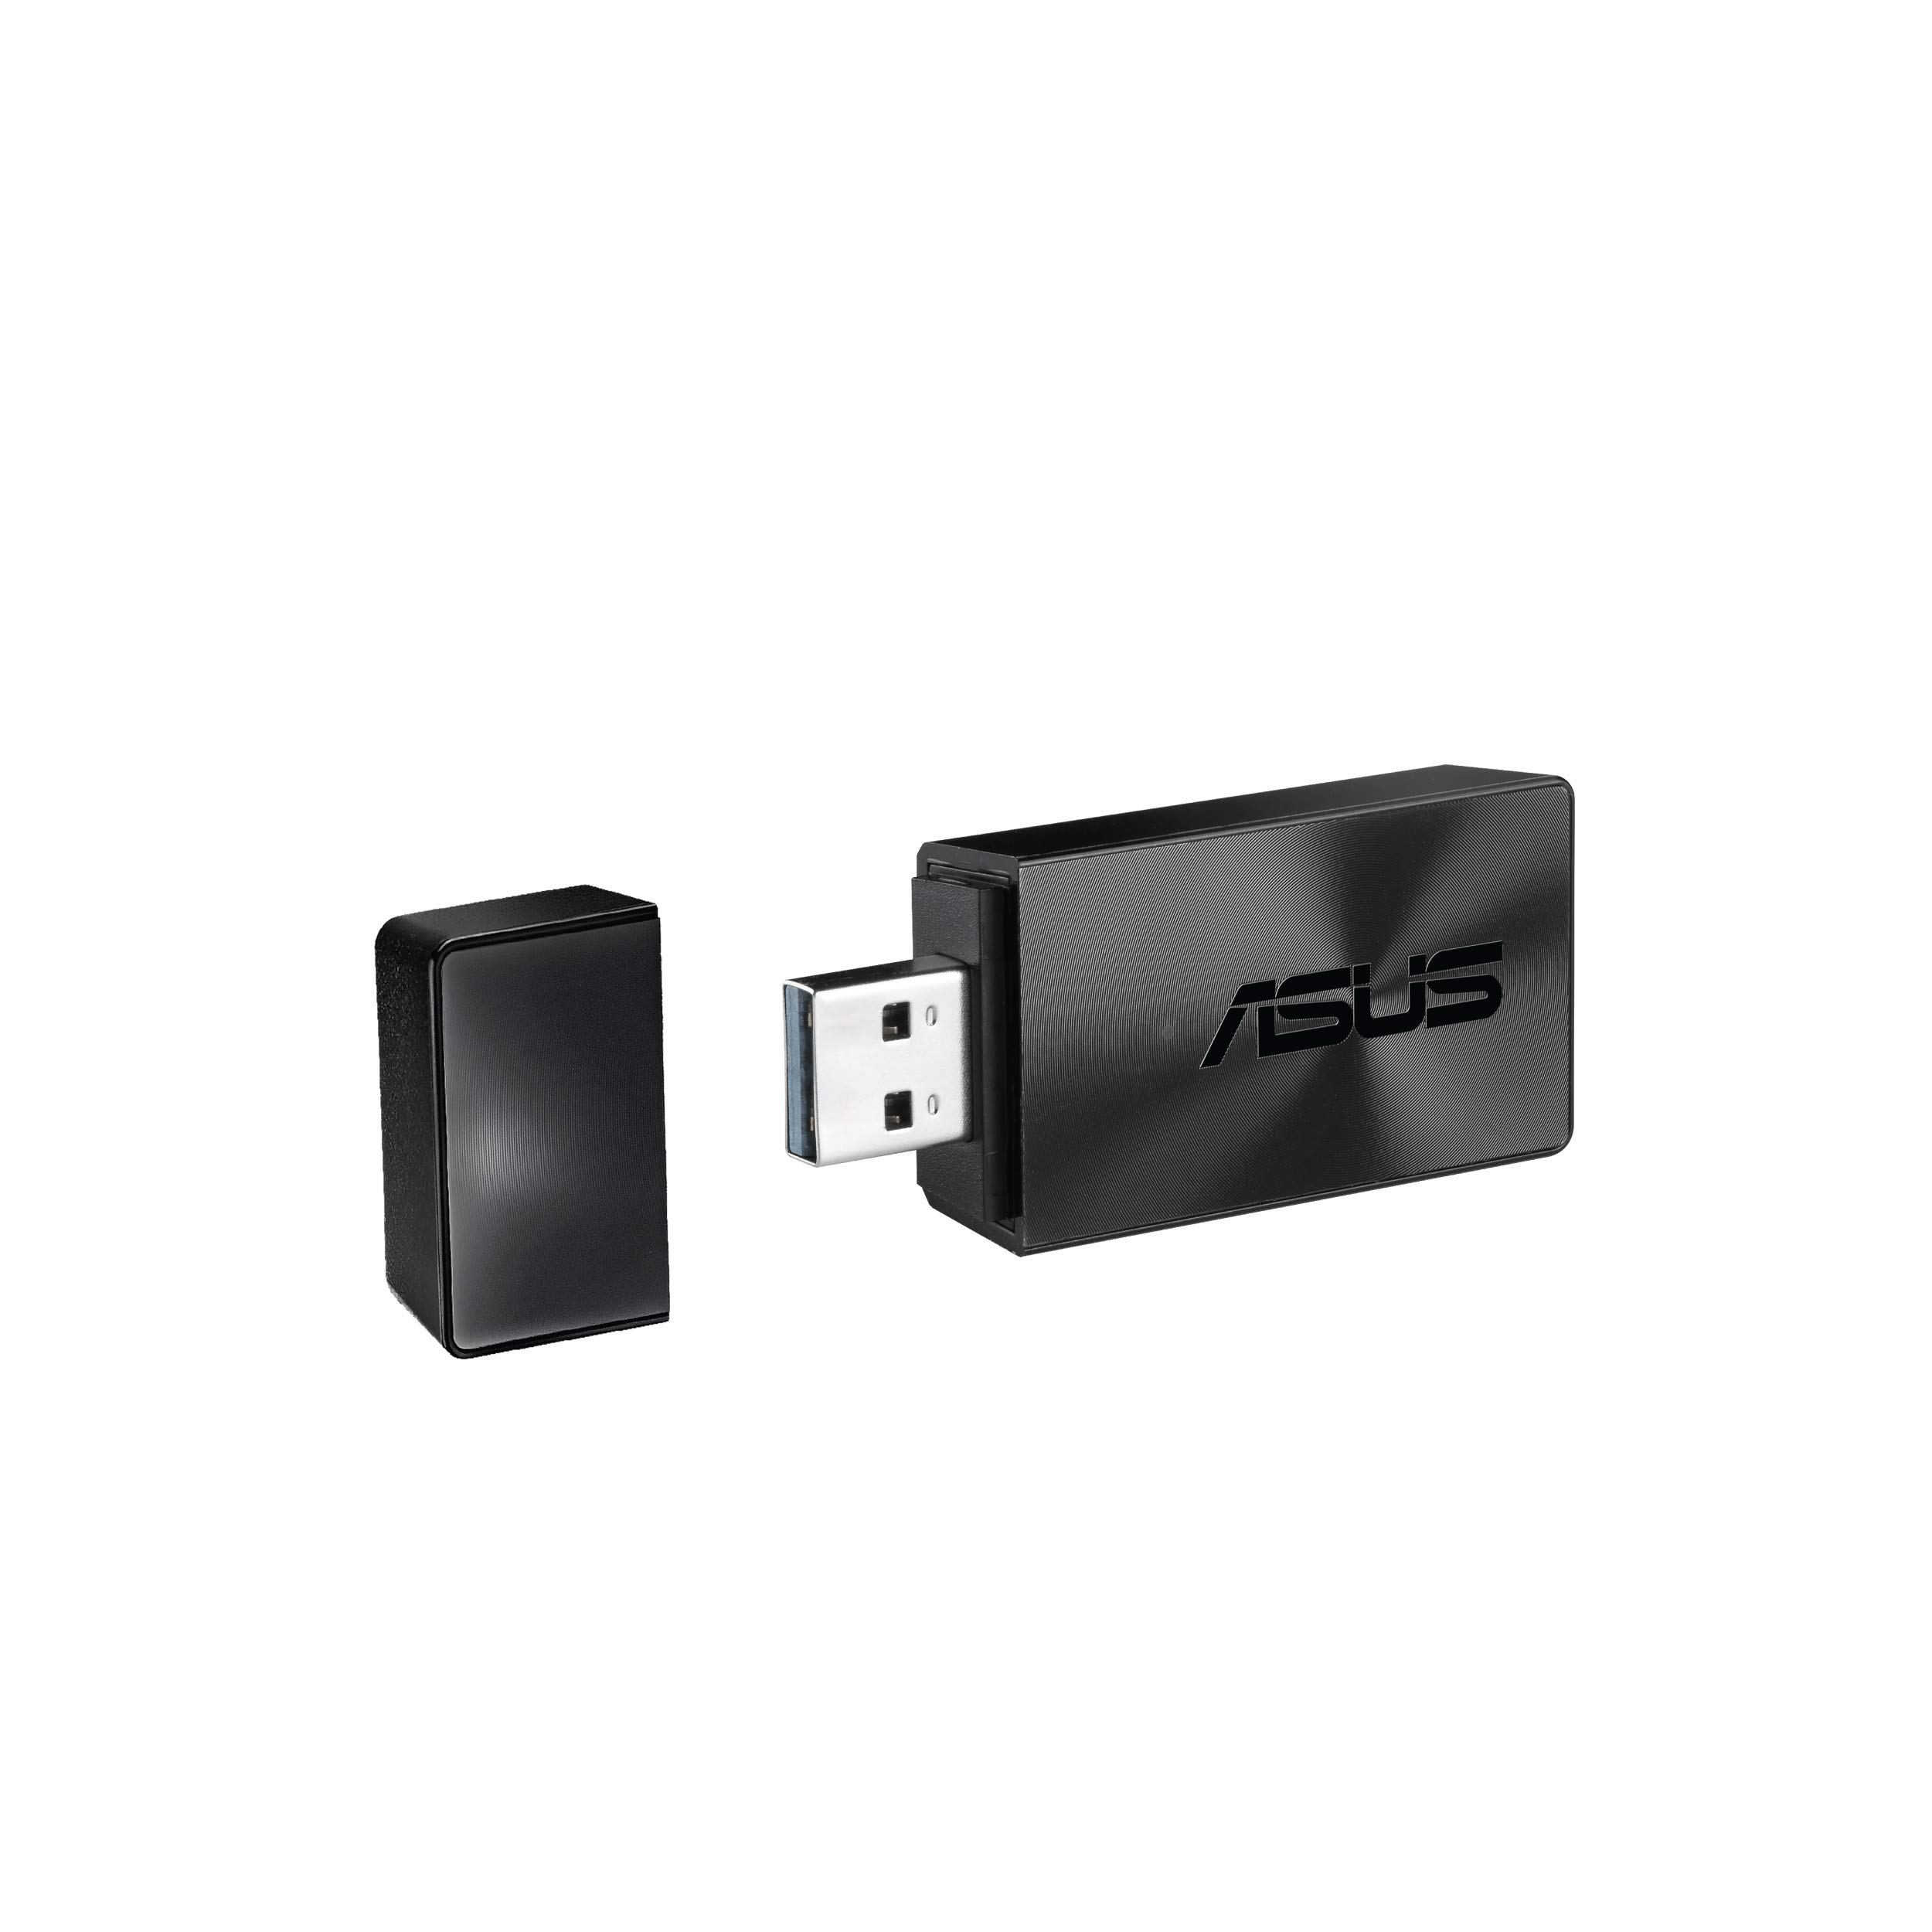 ASUS USB-AC55 B1 Dual Band USB Wireless Adapter